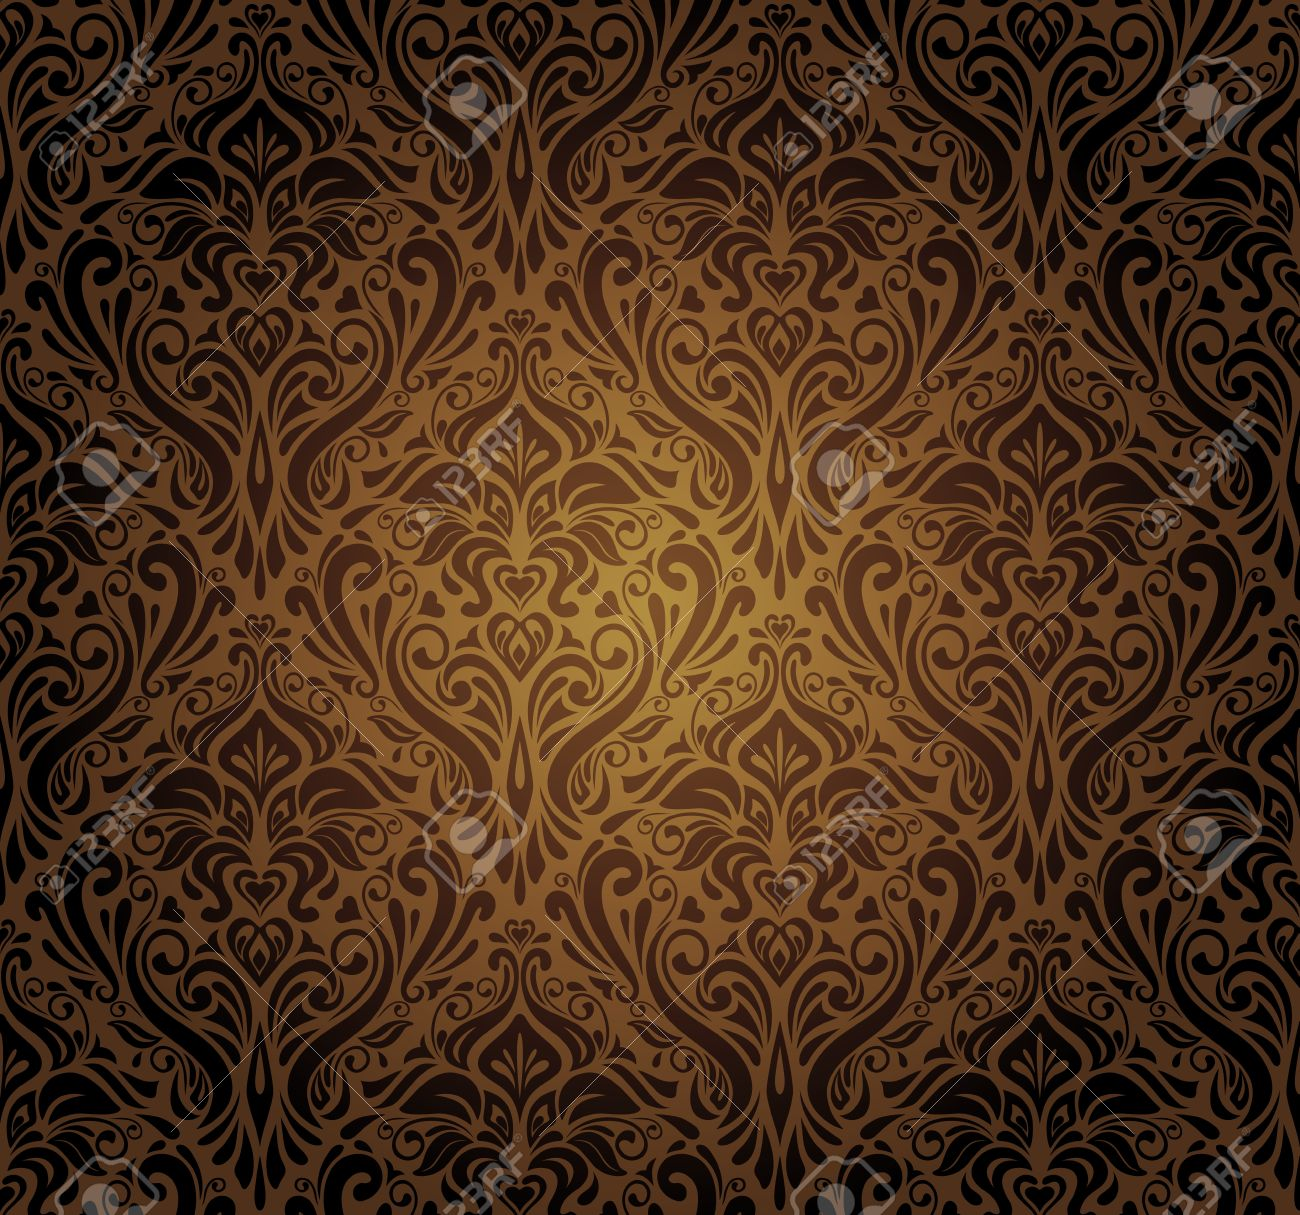 Dark Brown Vintage Wallpaper Design Stock Vector